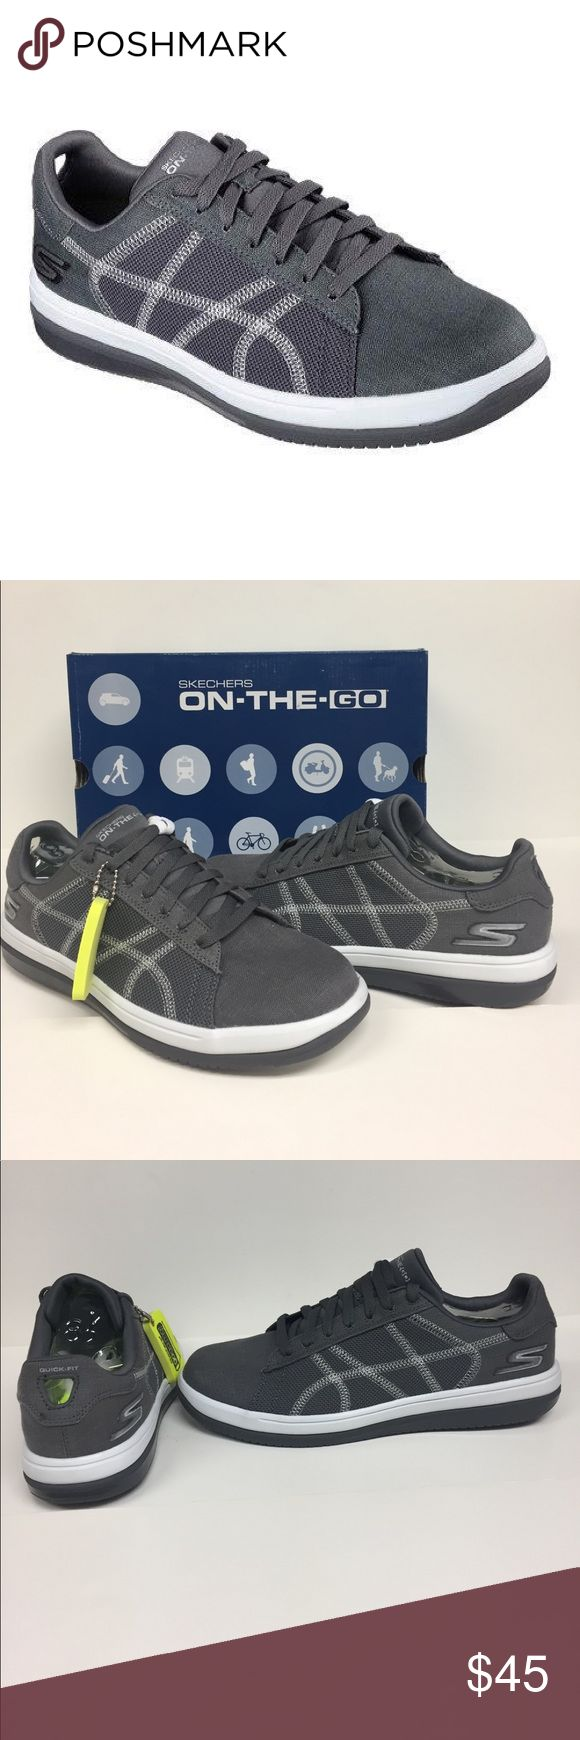 Skechers men's on the Go Refined Sneakers NIB Skecher Go Run Refine is a well cushioned lightweight trainer perfect for a variety of workouts in and out of the gym. Cushioned midsole in a breathable mesh upper offer an incredibly responsive work out shoe. Style 53728. Charcoal color Skechers Shoes Athletic Shoes